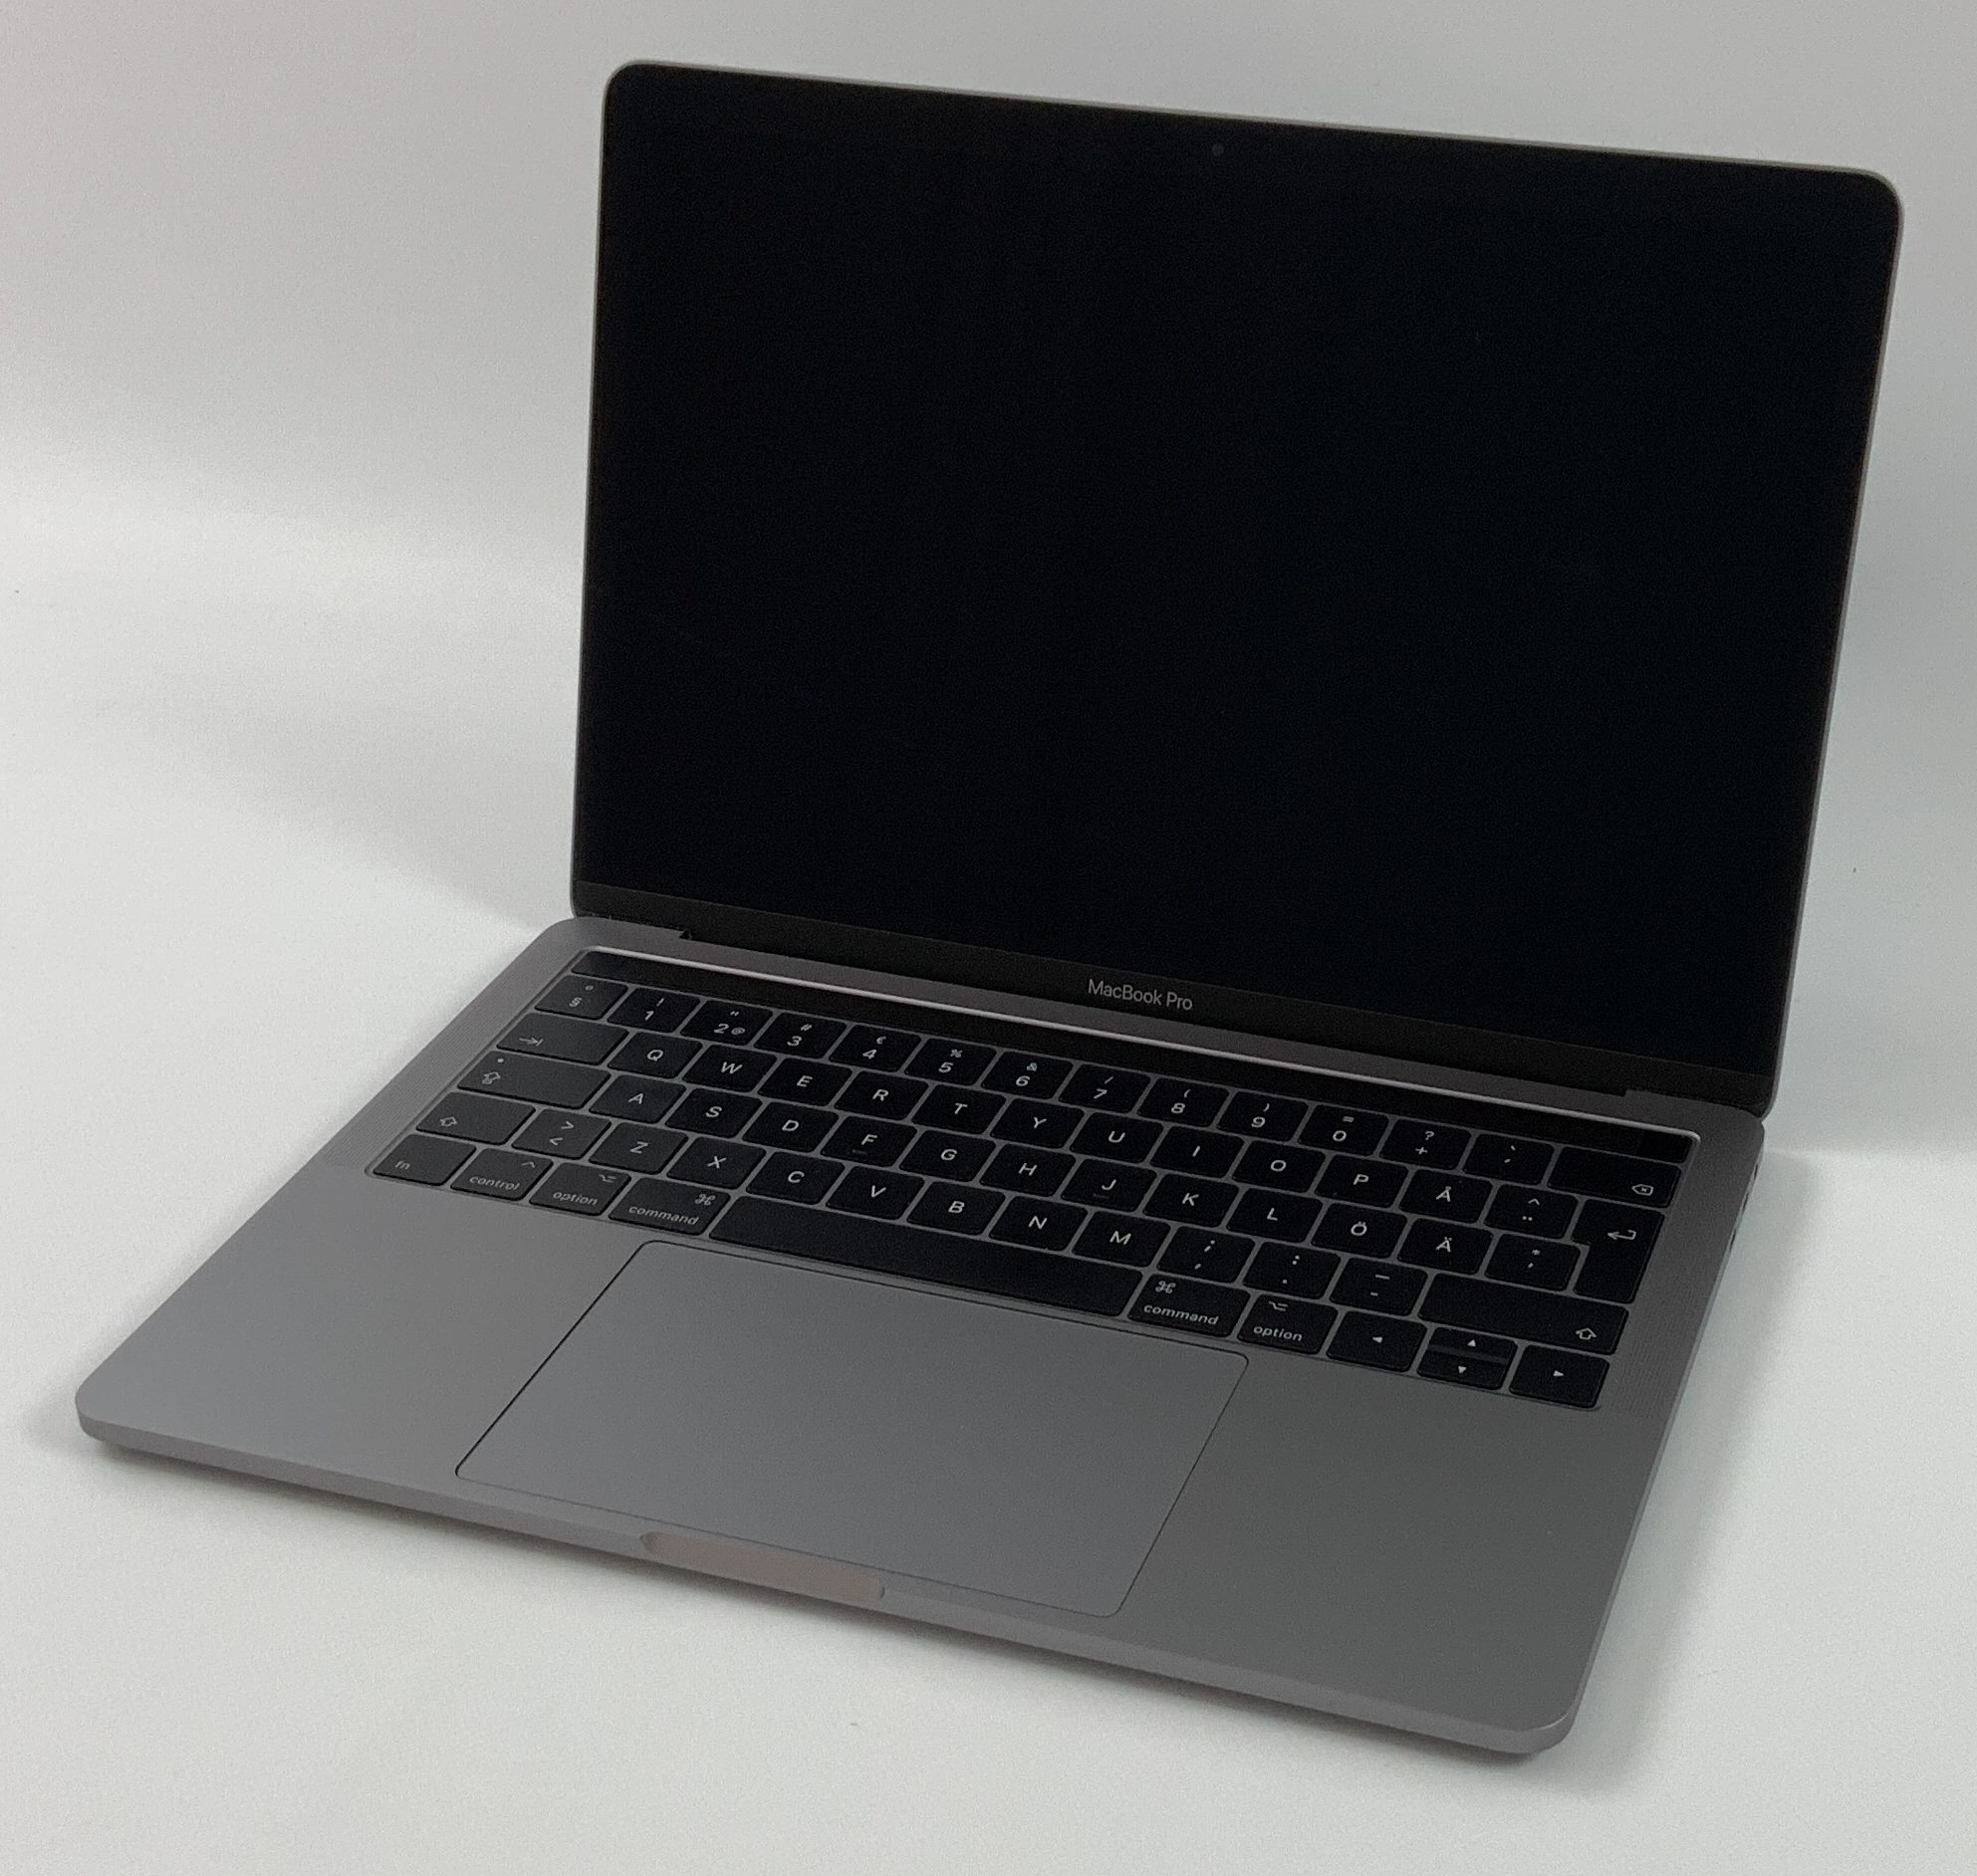 "MacBook Pro 13"" 4TBT Mid 2017 (Intel Core i5 3.1 GHz 8 GB RAM 256 GB SSD), Space Gray, Intel Core i5 3.1 GHz, 8 GB RAM, 256 GB SSD, imagen 1"